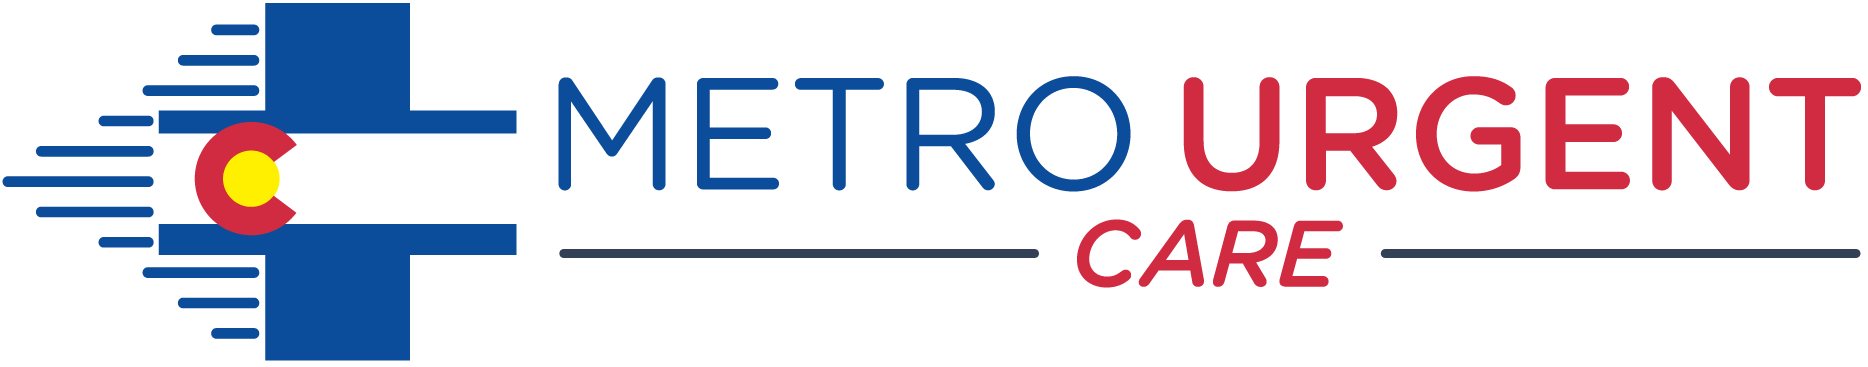 Metro Urgent Care - 120th Logo